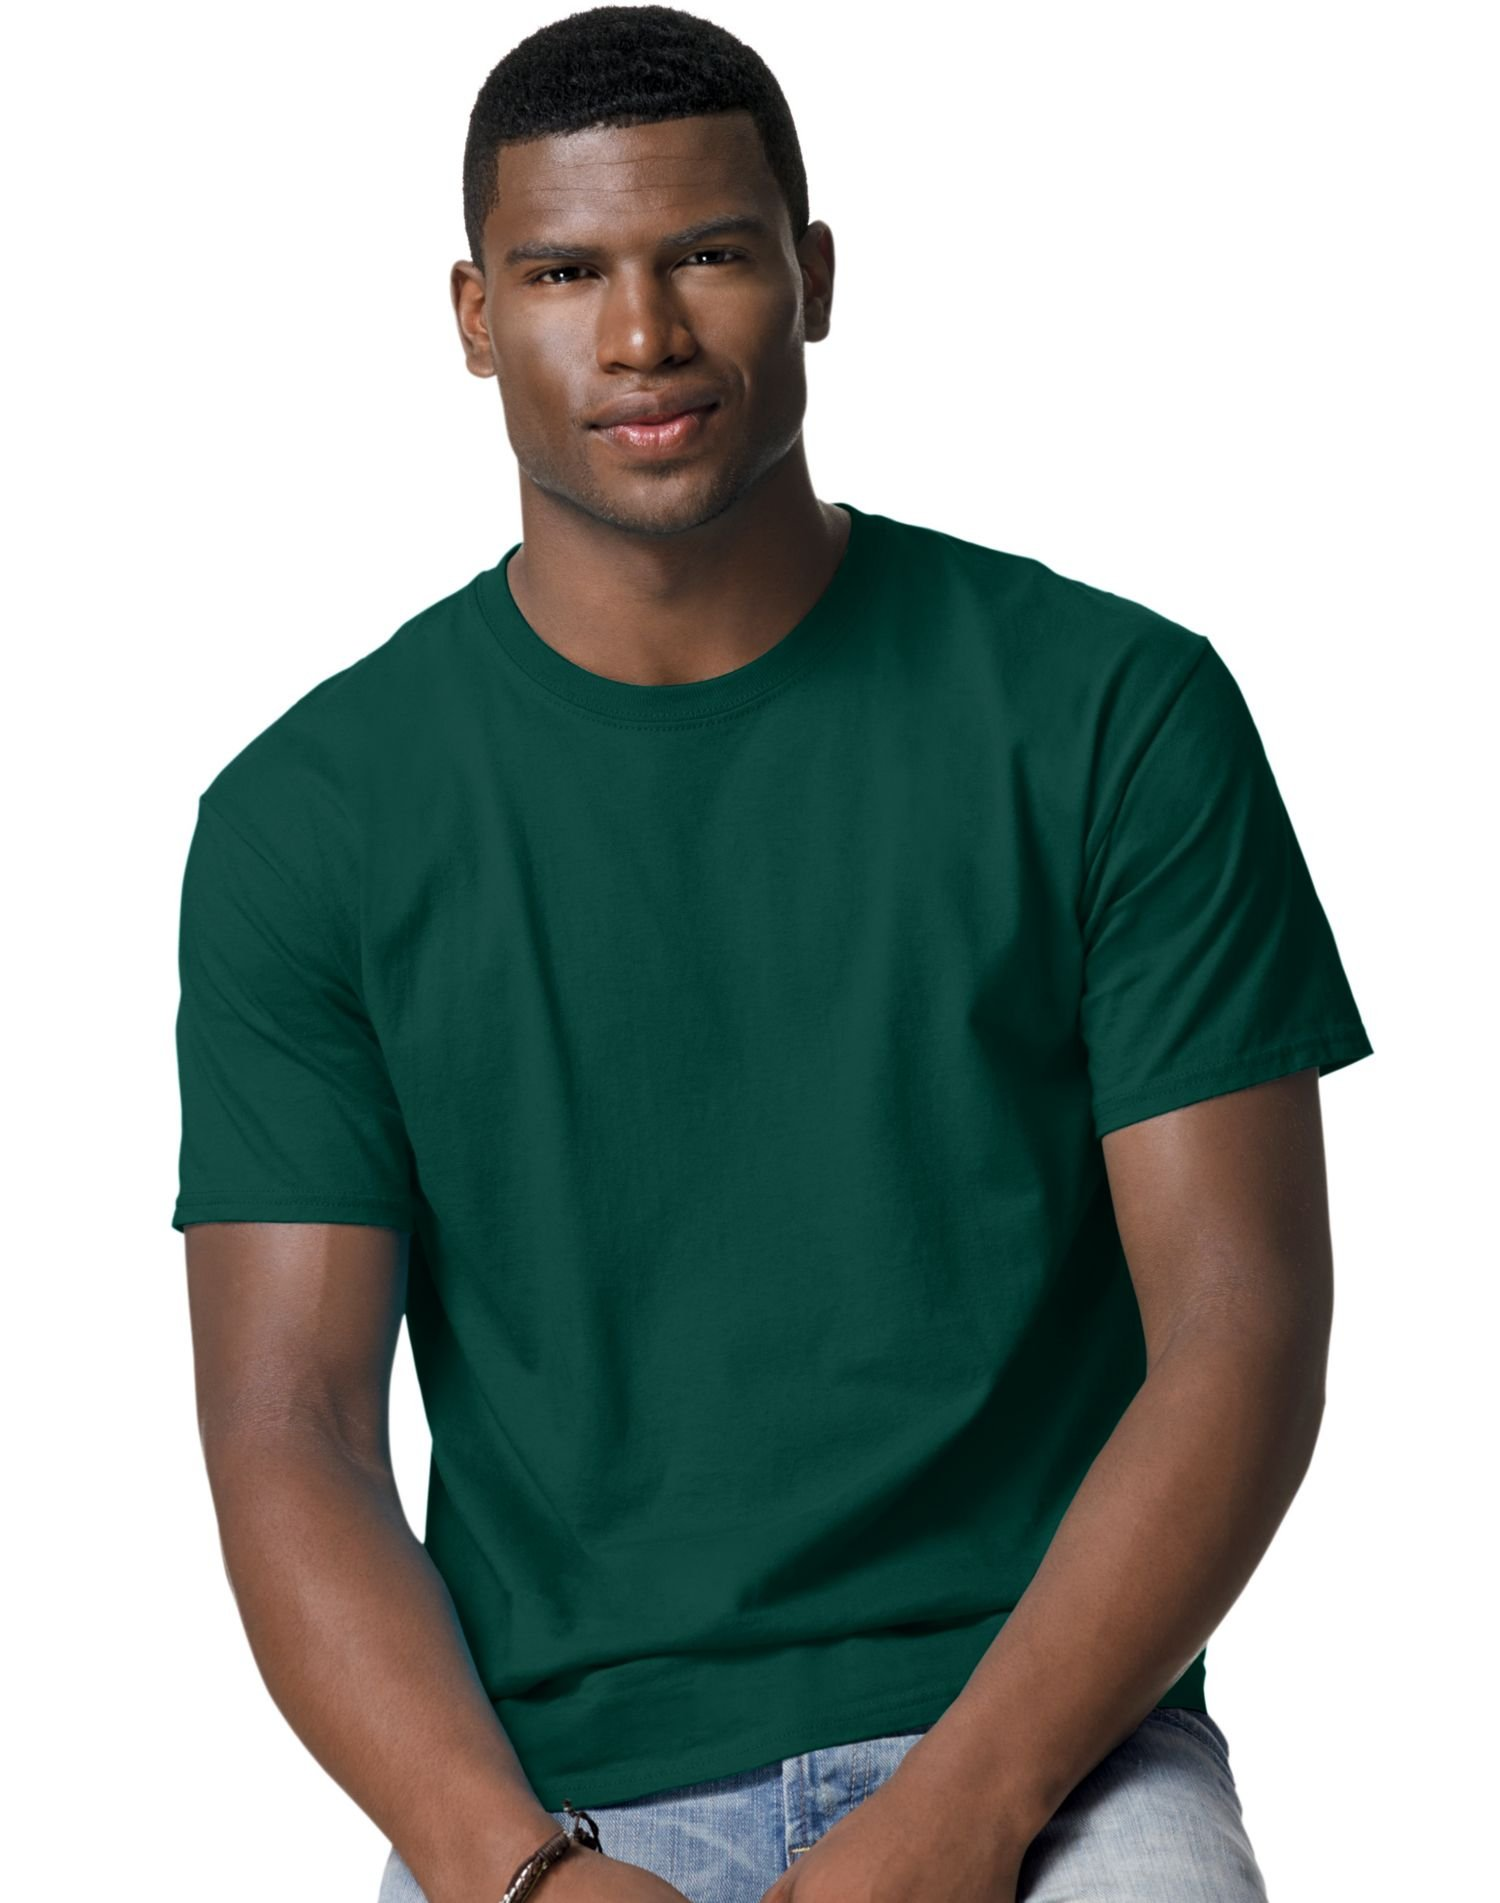 Hanes TAGLESS T-Shirt, XXXXX-Large, Deep Forest by Hanes